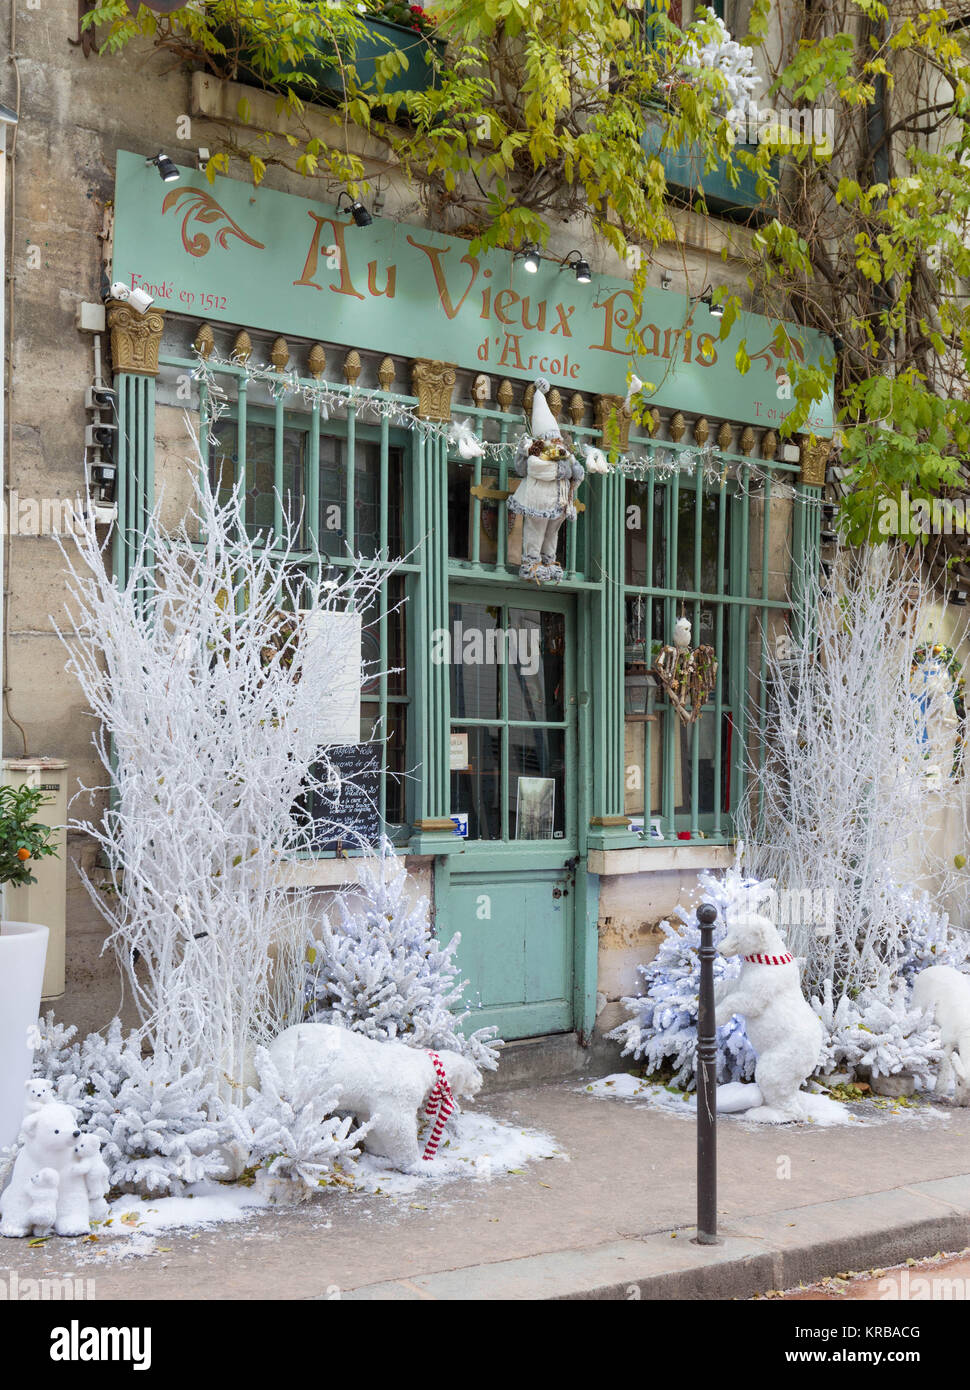 The traditional French cafe Au viex Paris d'Arcole decorated for Christmas, France. - Stock Image